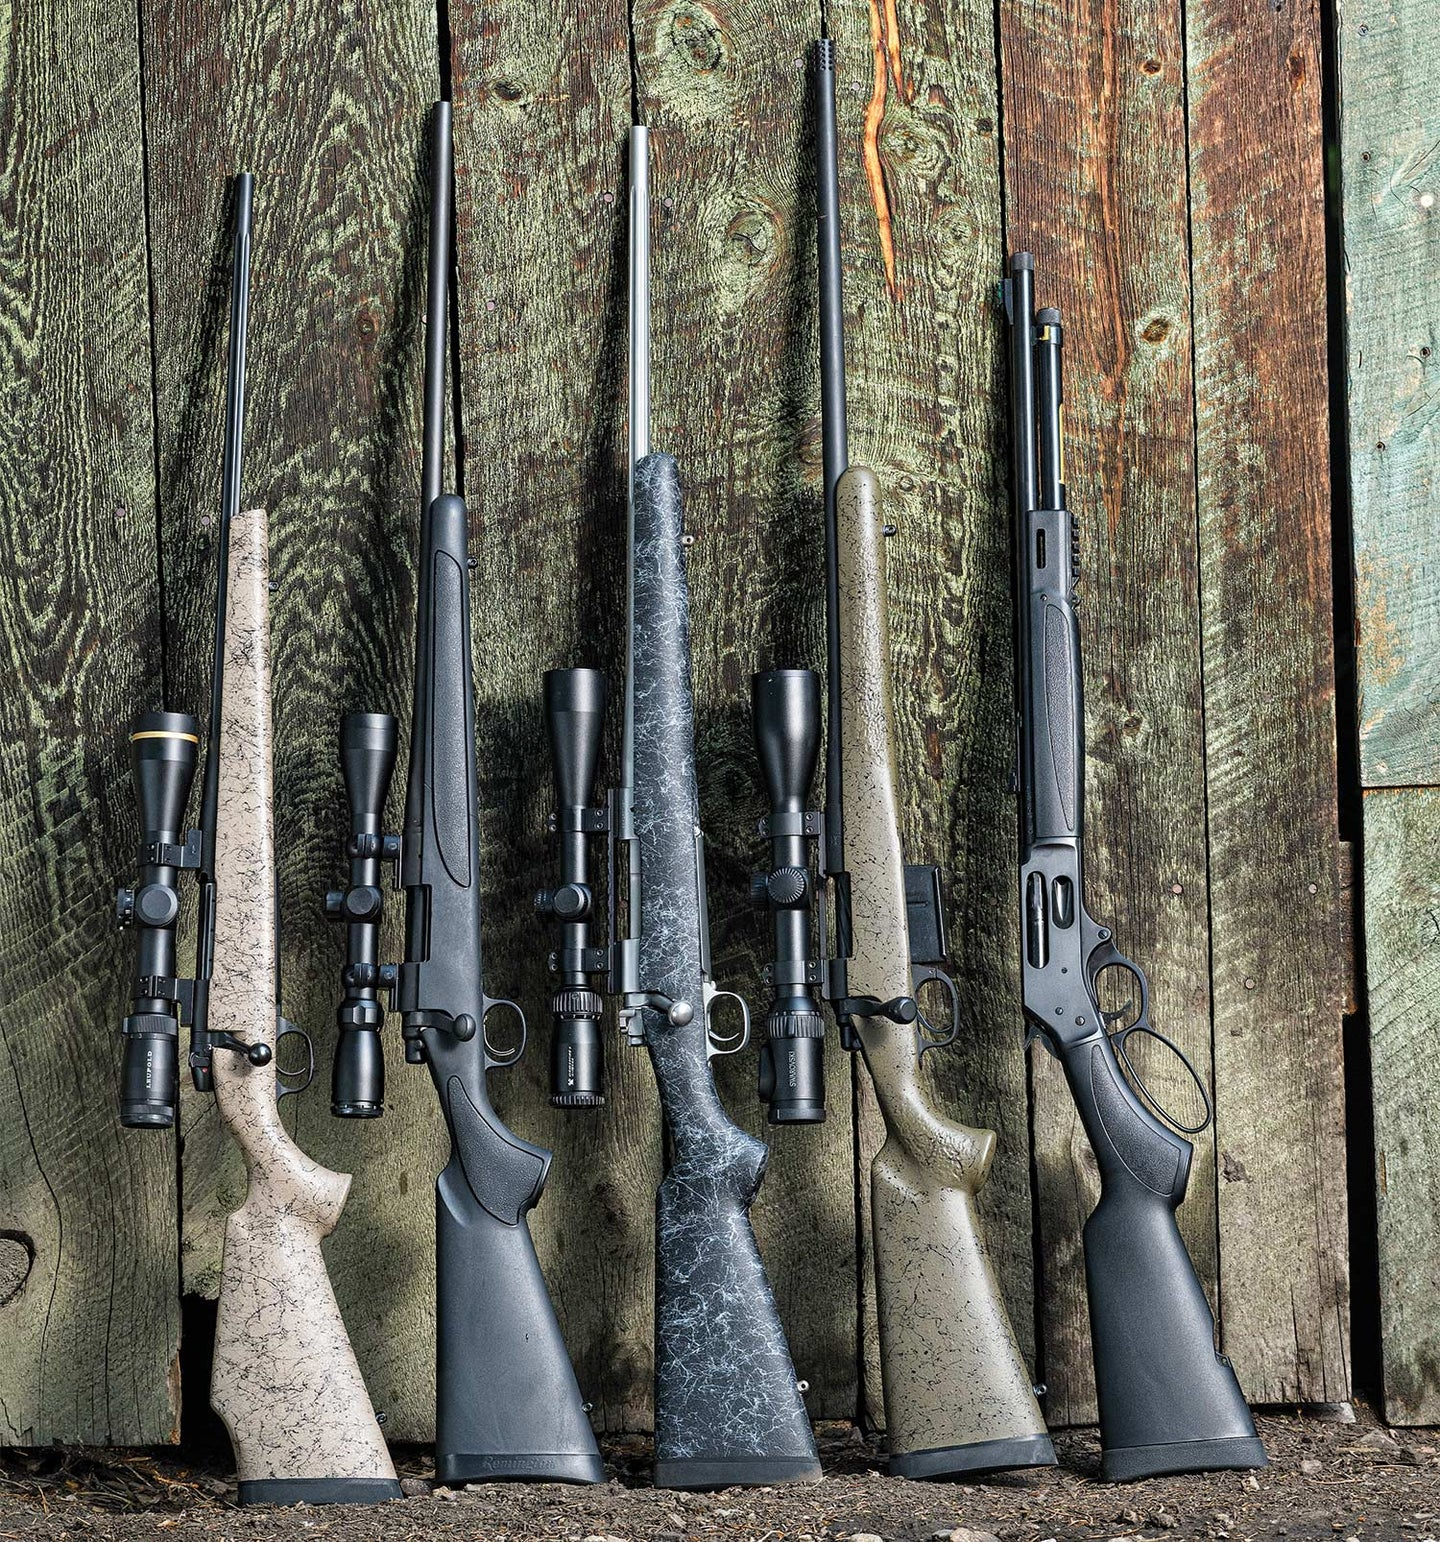 Five rifles lined up and leaning against a wooden wall.